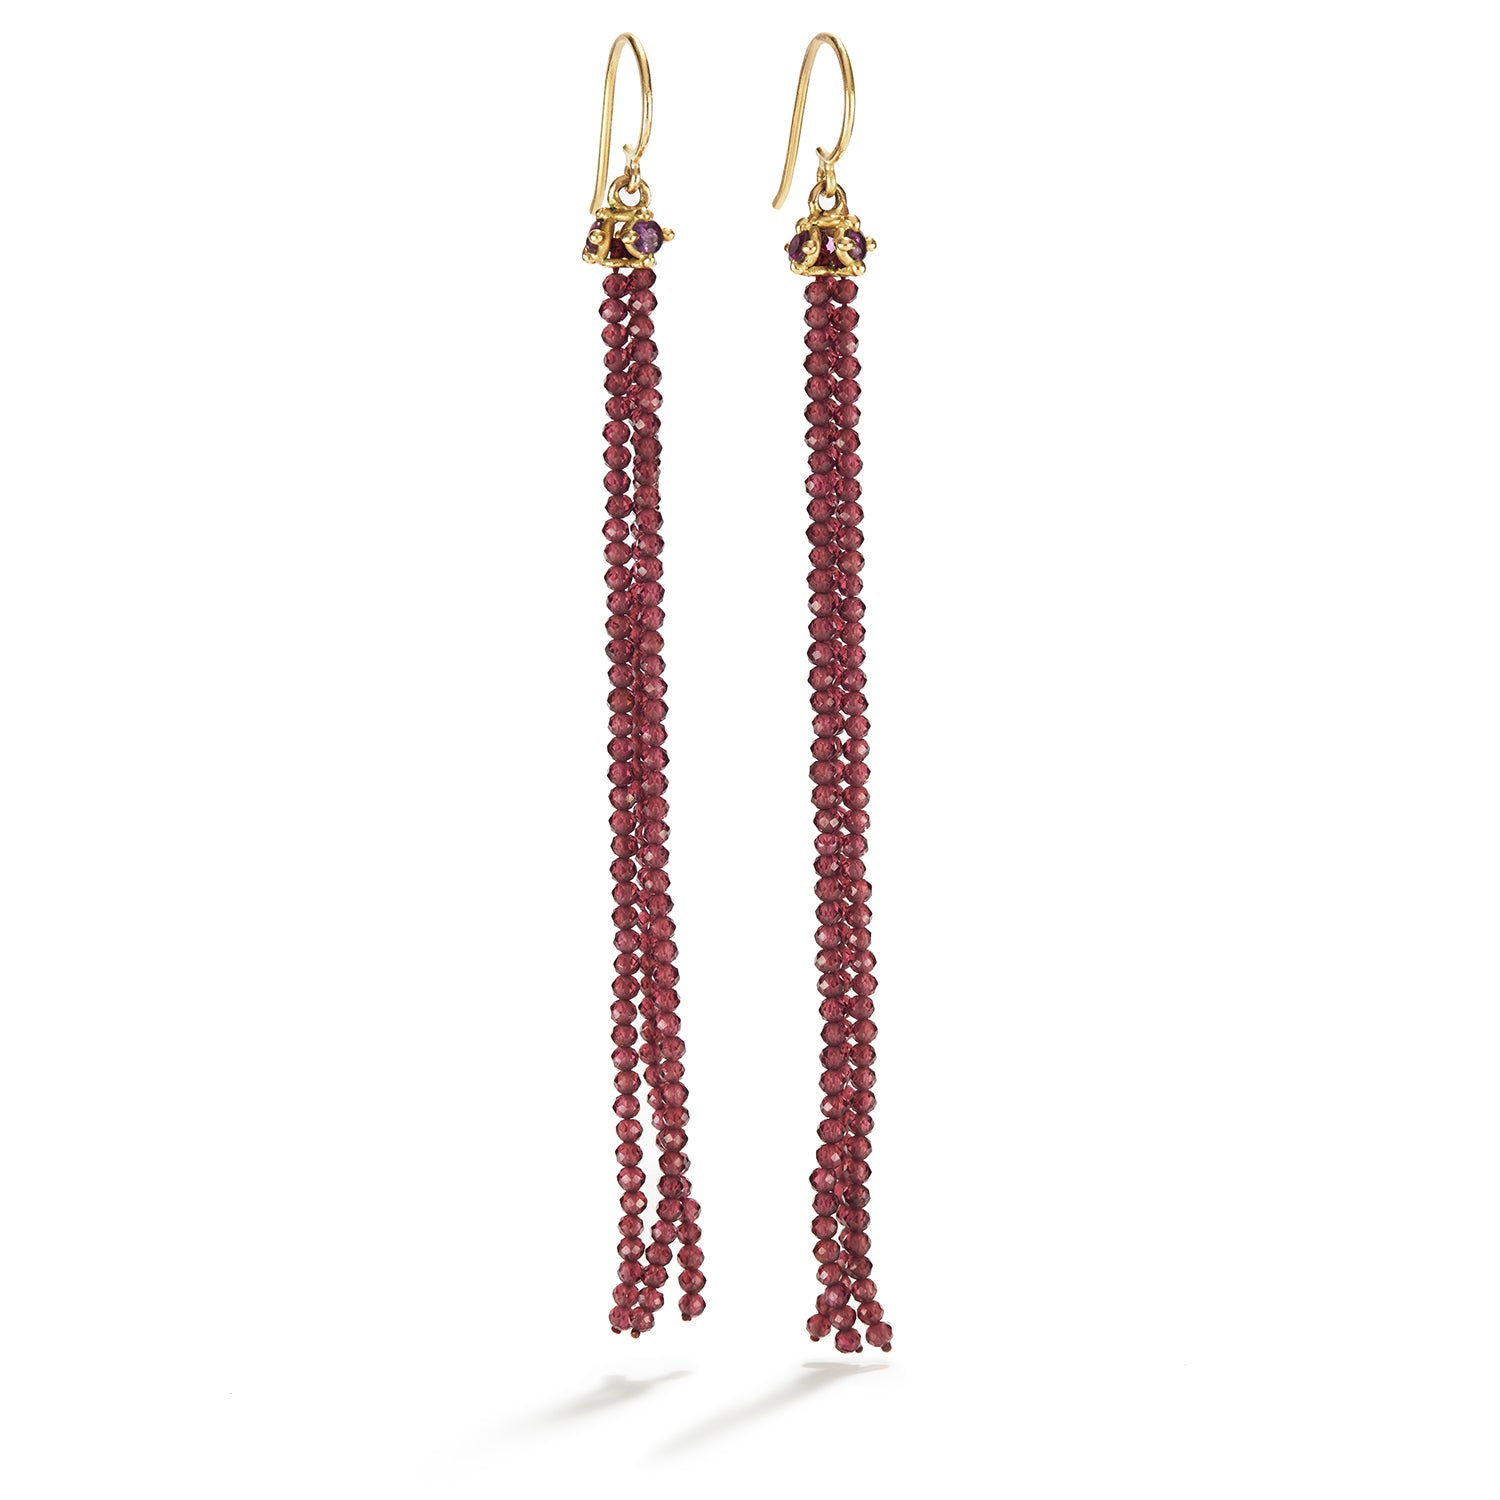 Burlesque Burgundy Garnet Earrings